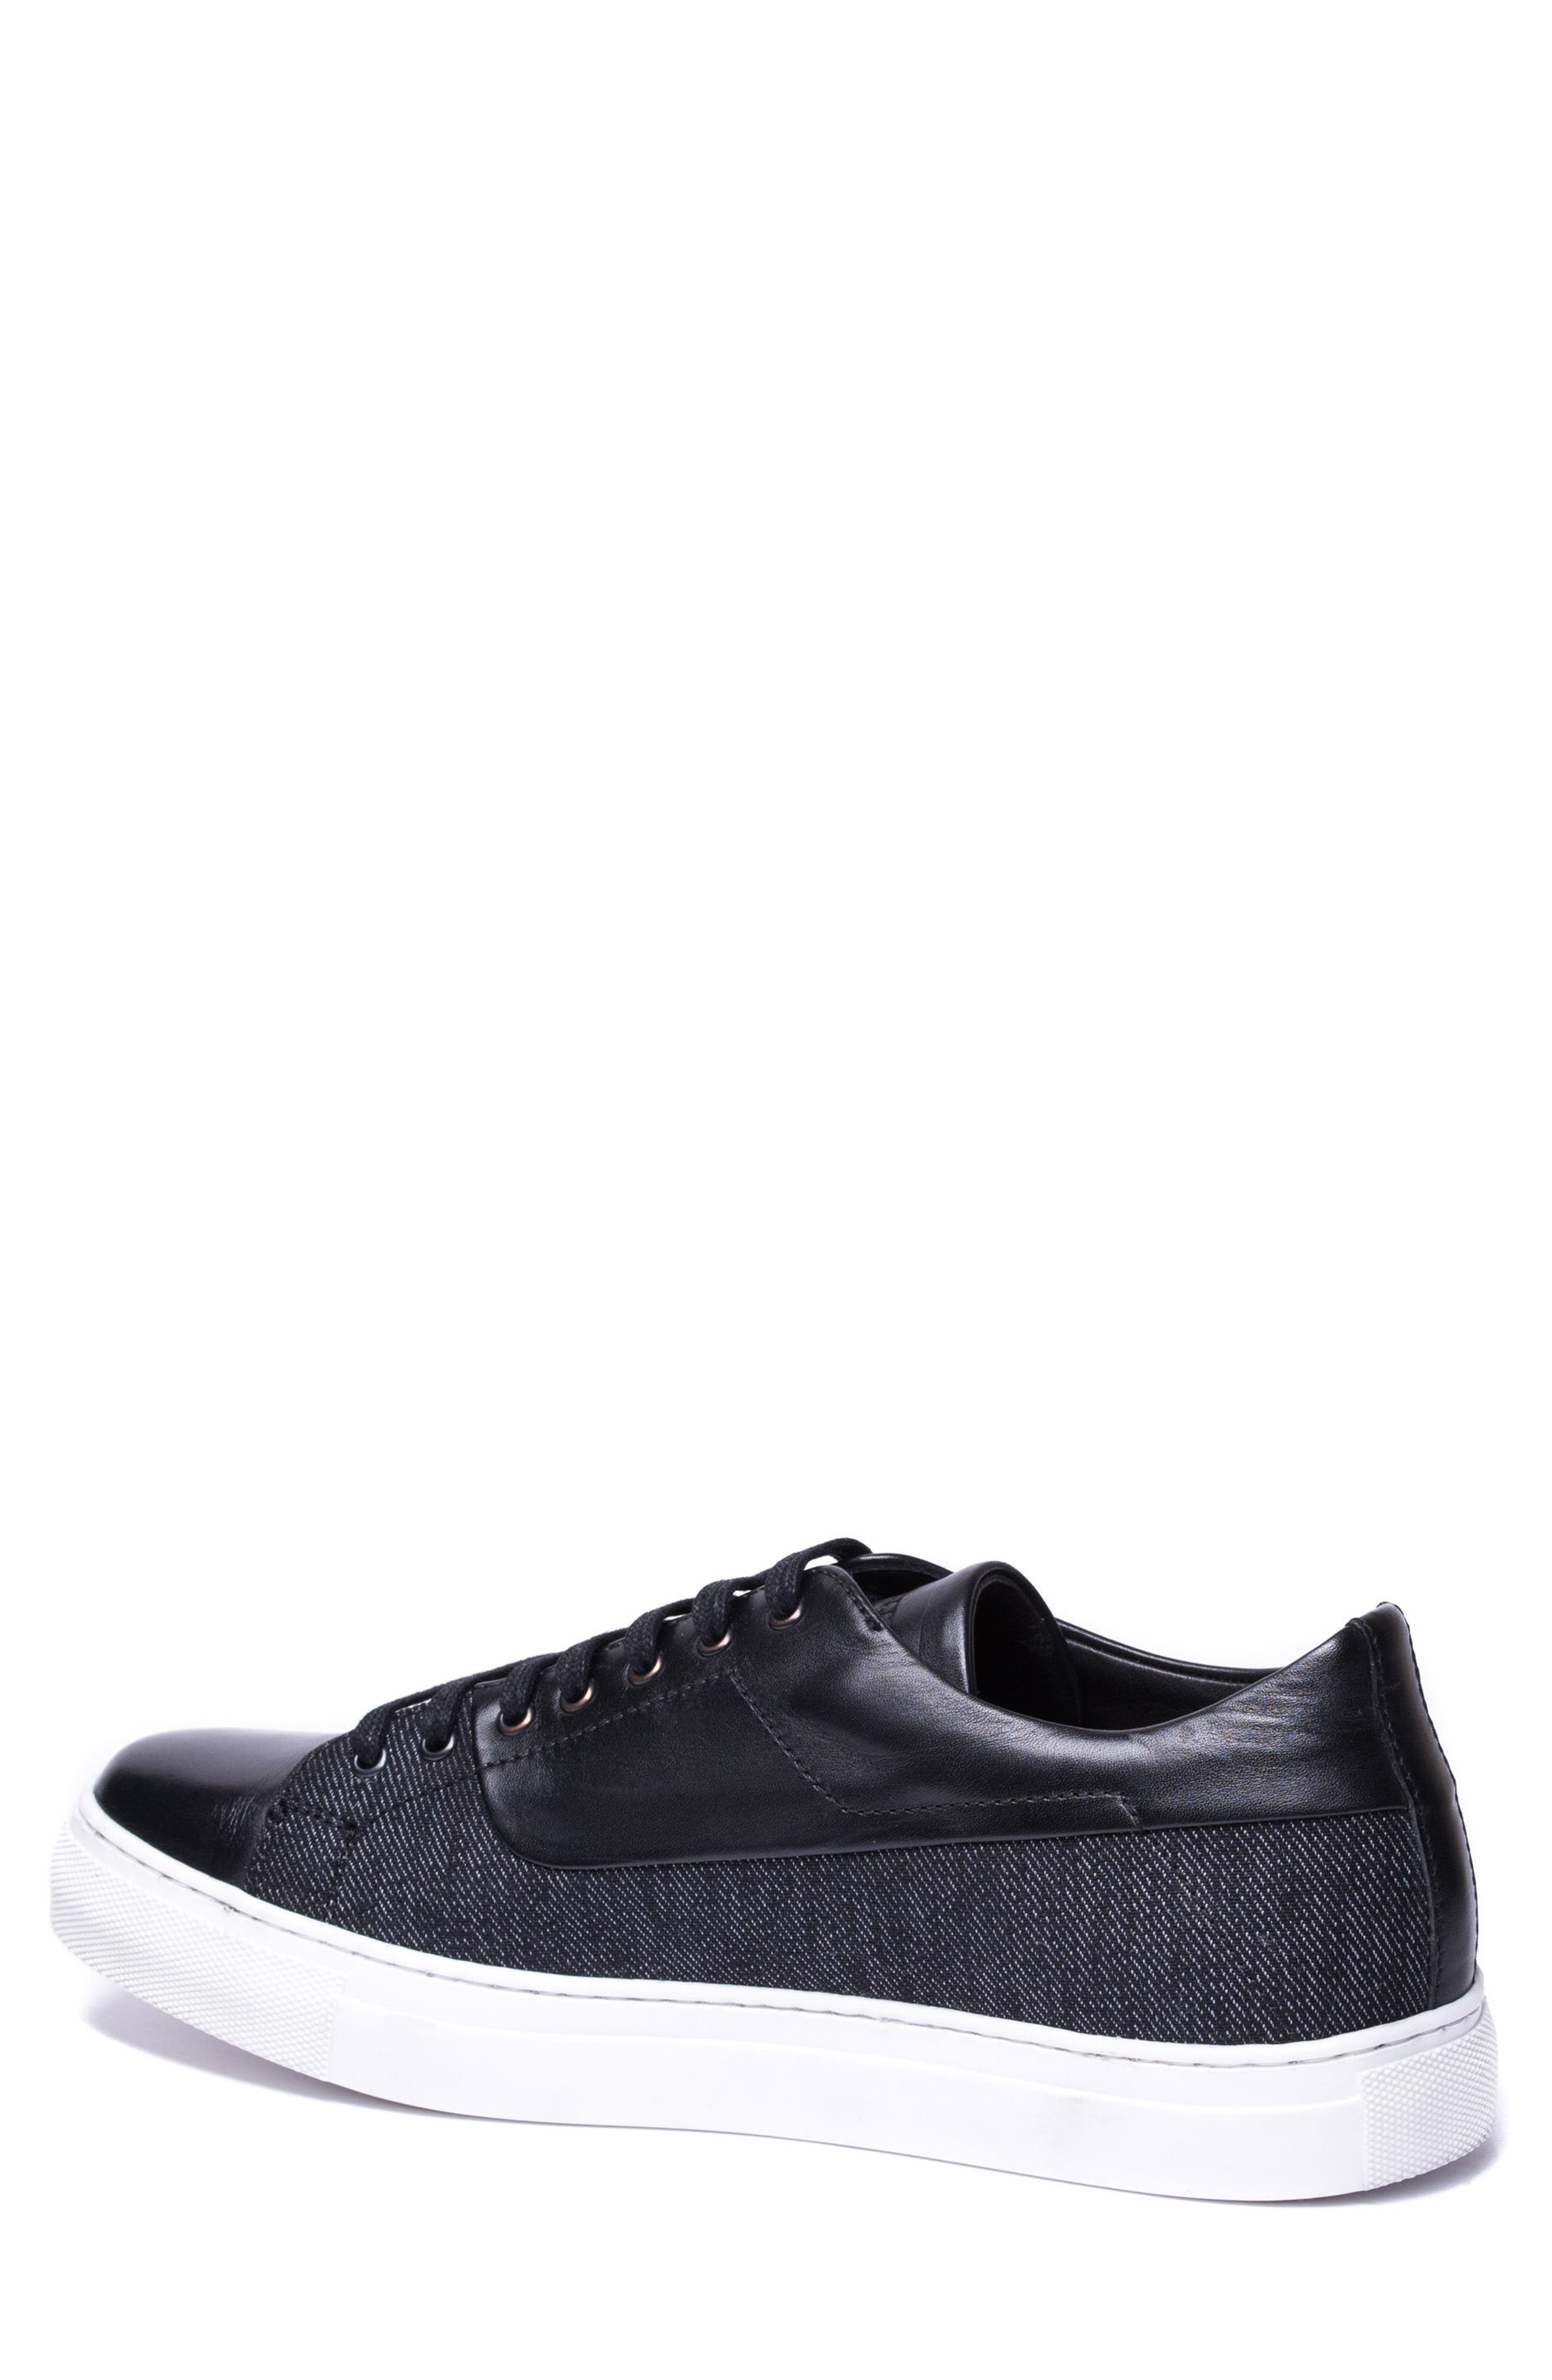 Luke Low Top Sneaker,                             Alternate thumbnail 2, color,                             BLACK LEATHER